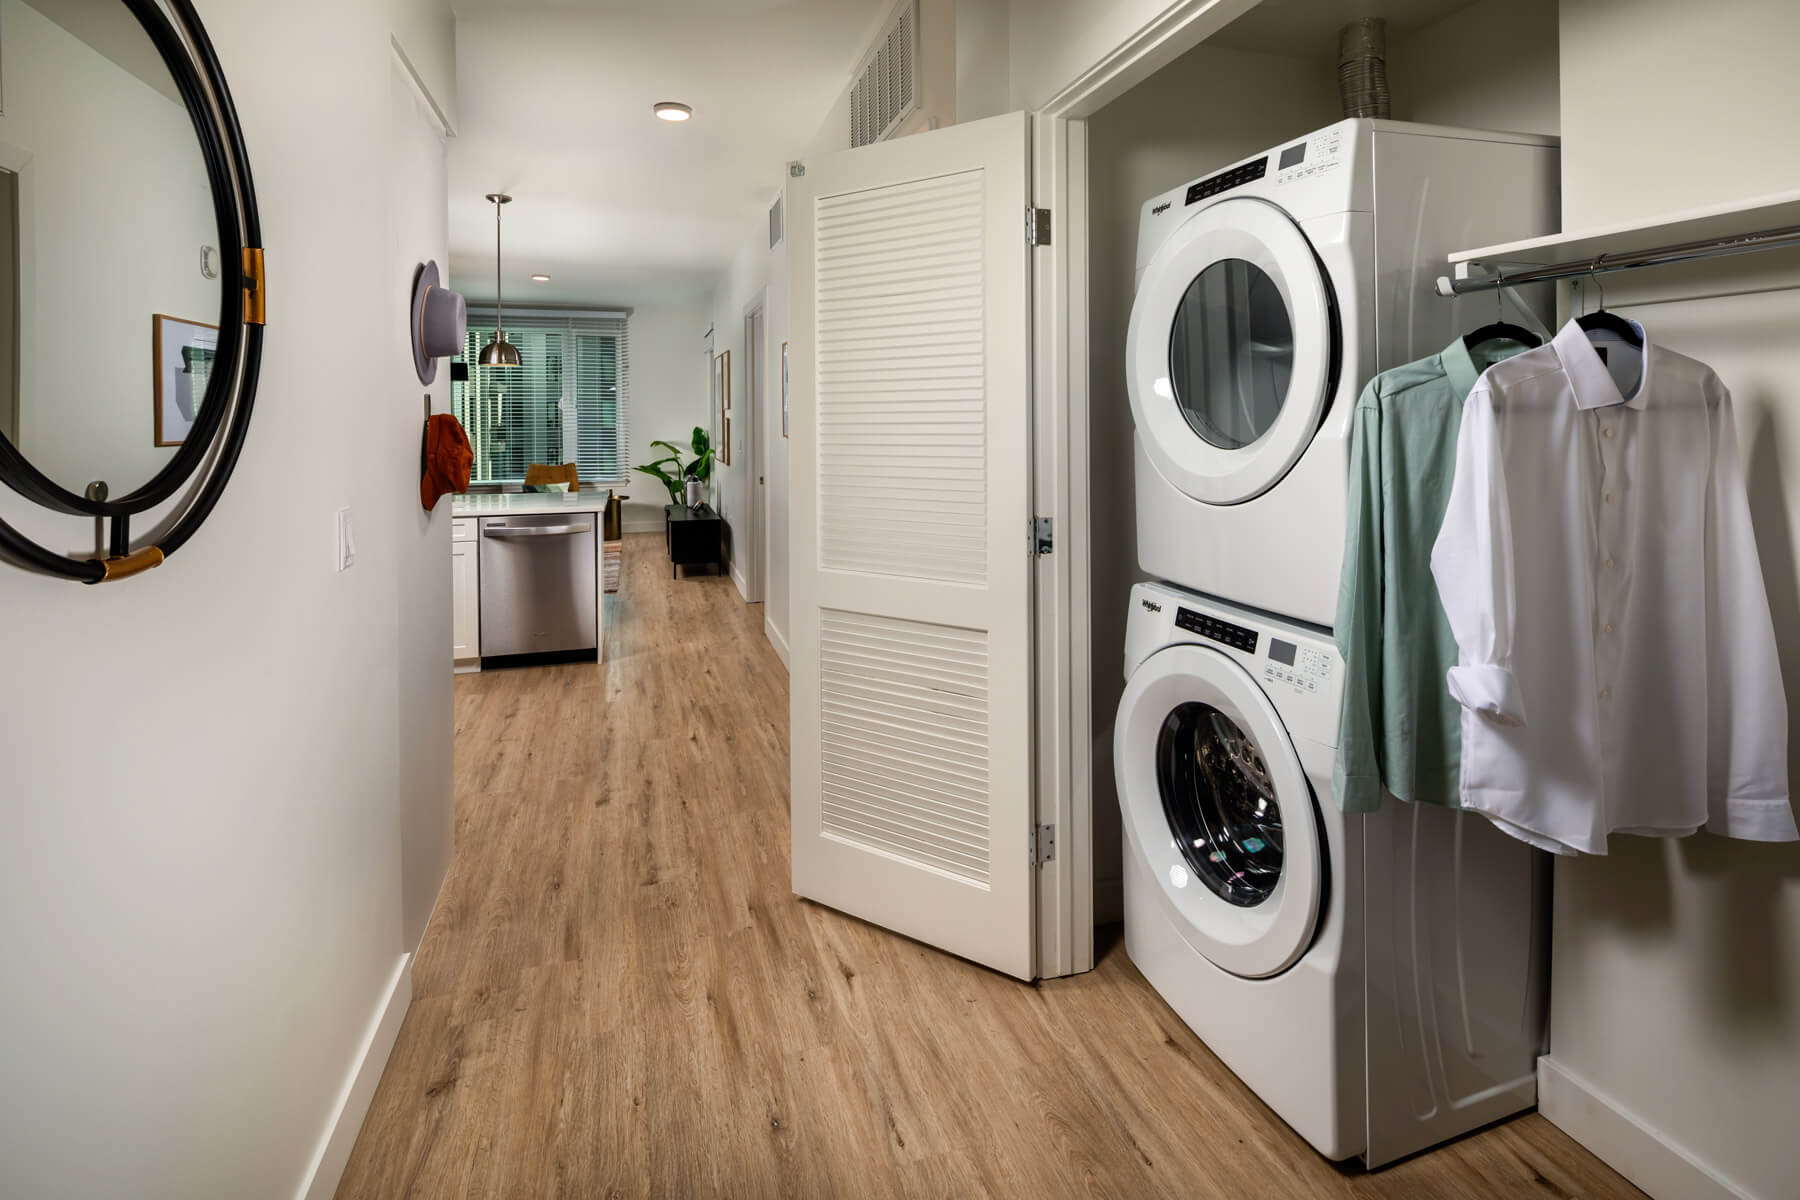 One Bedroom Residence Laundry